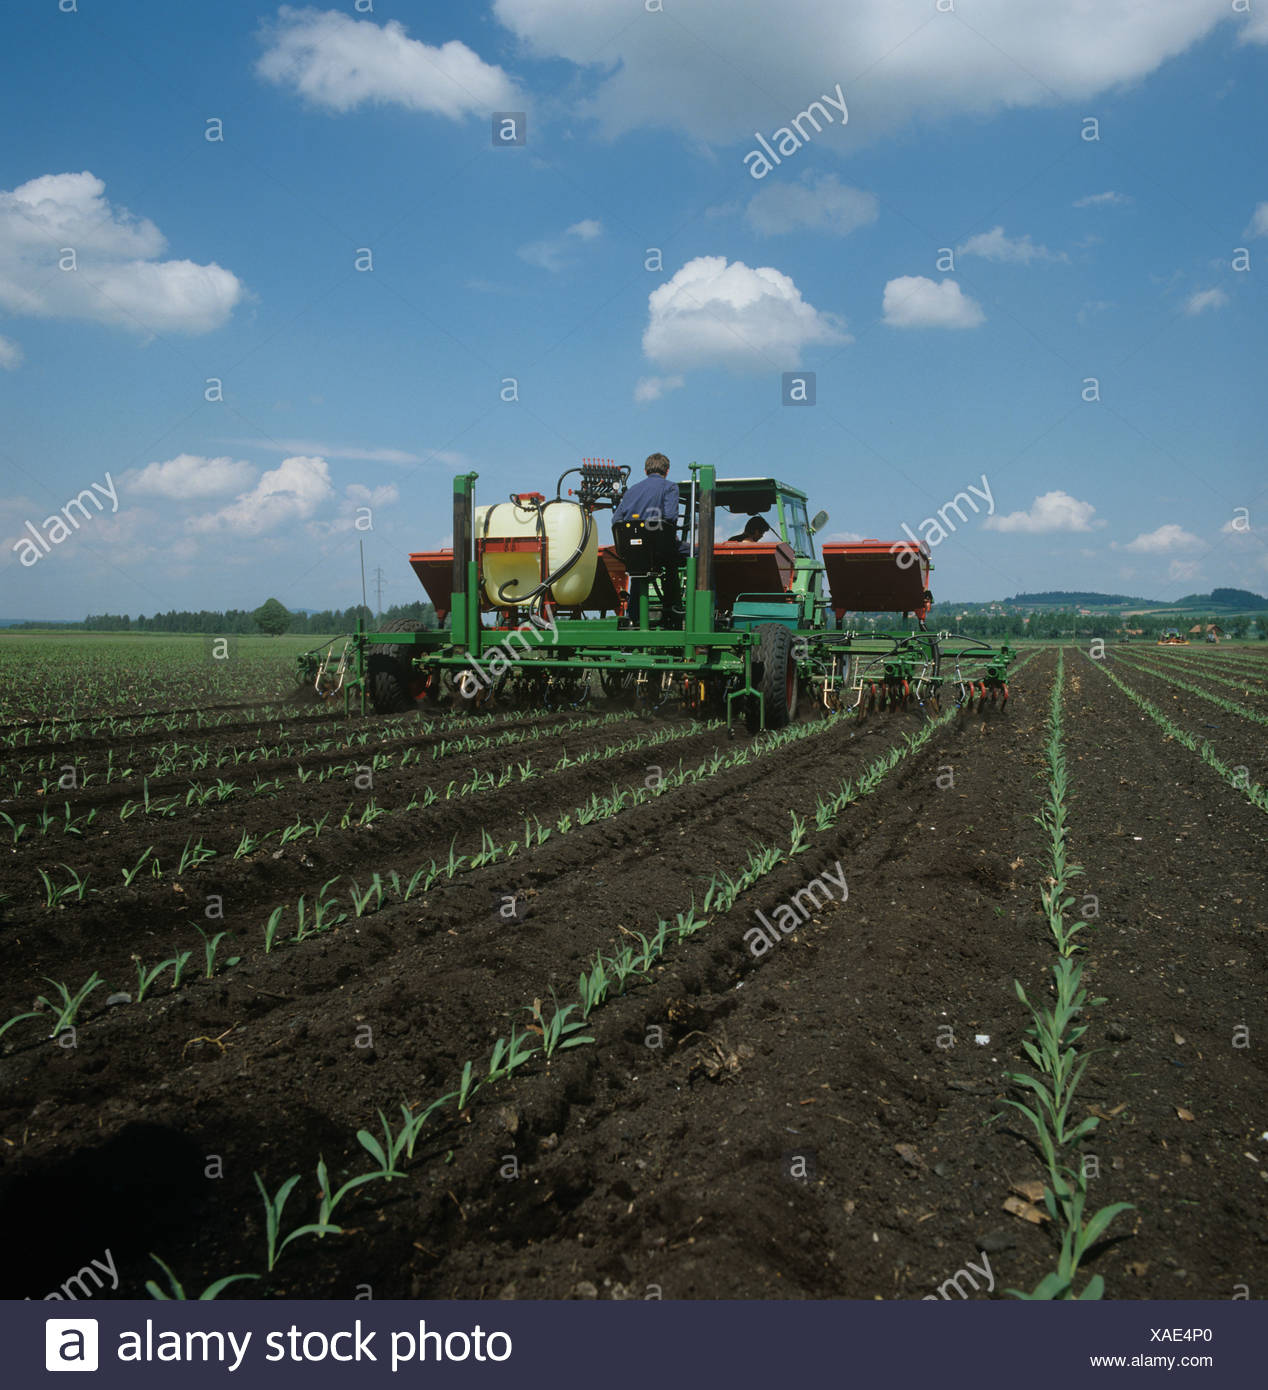 Machine for maize interrow cultivation spraying and fertilizing crop - Stock Image